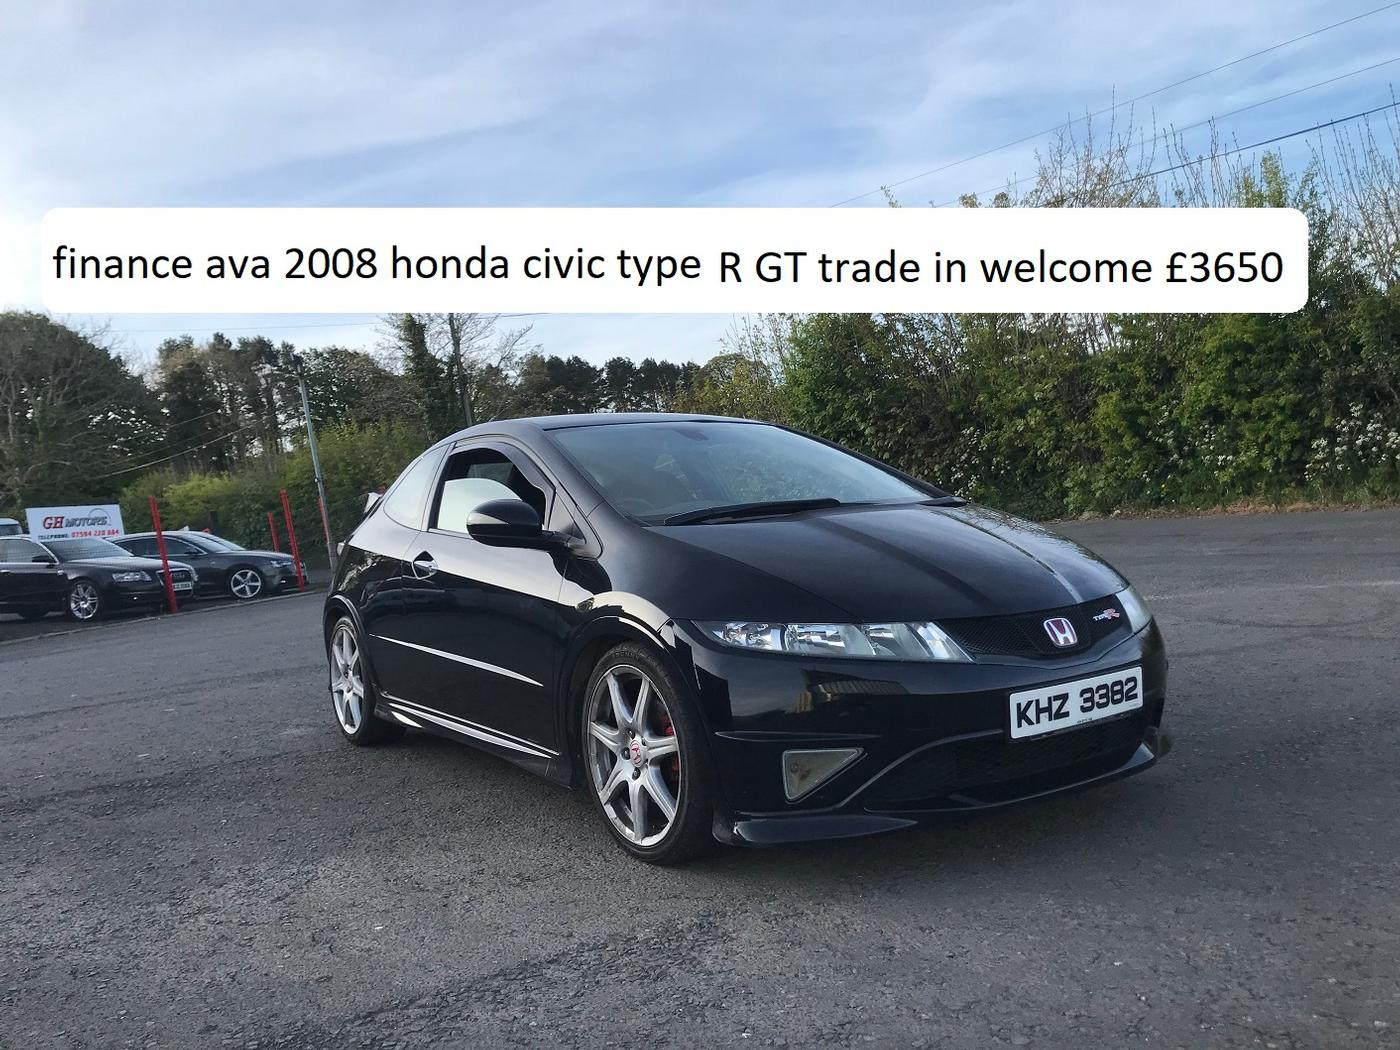 2008 honda civic type r gt